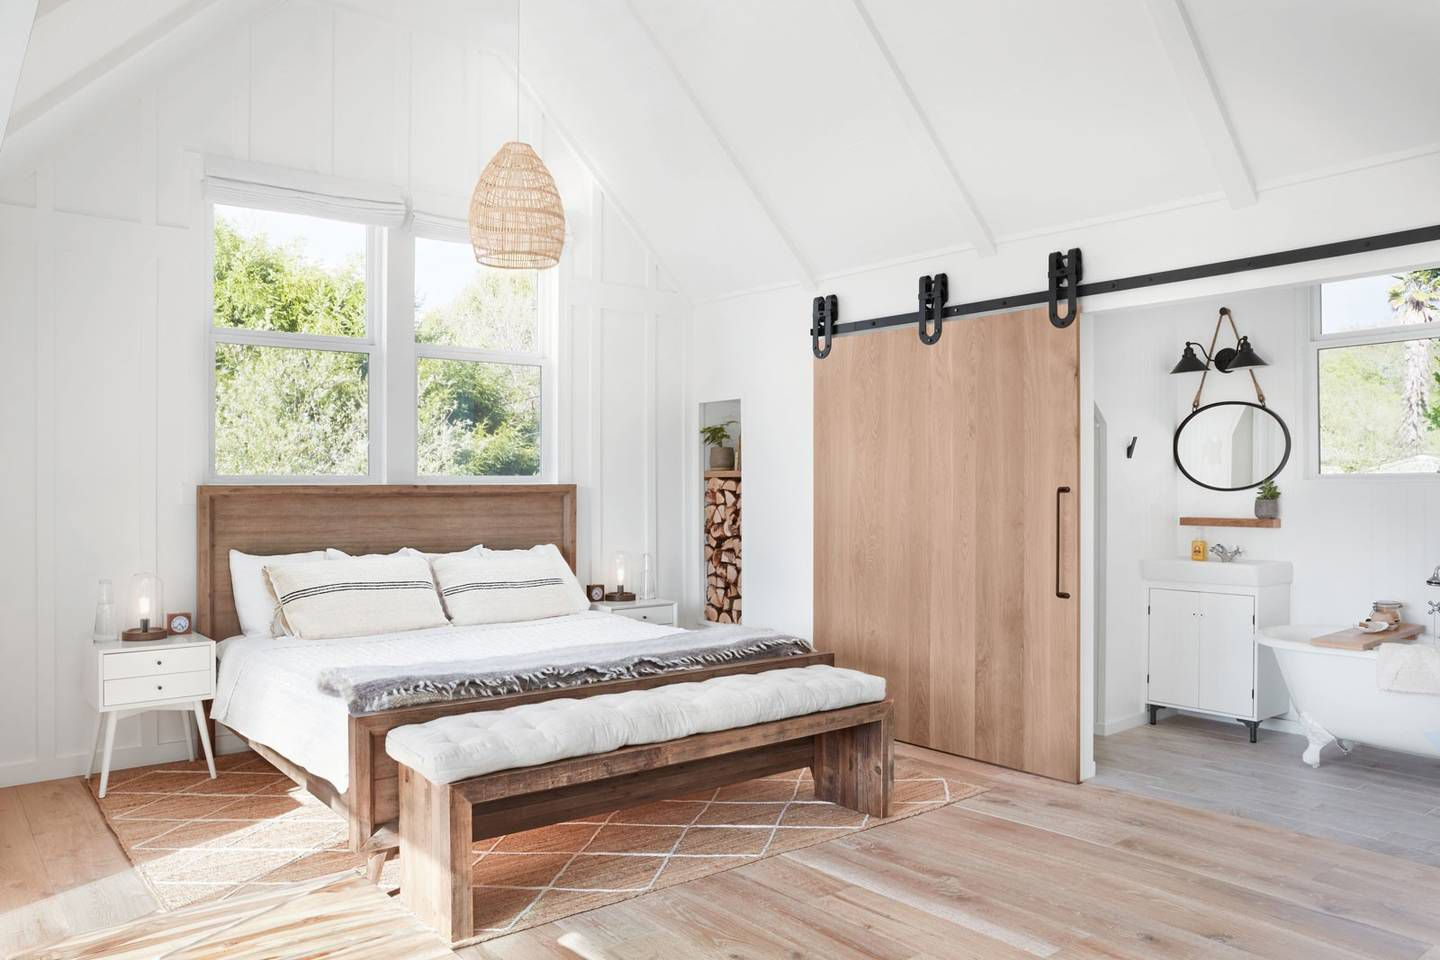 Farmhouse style airbnb room